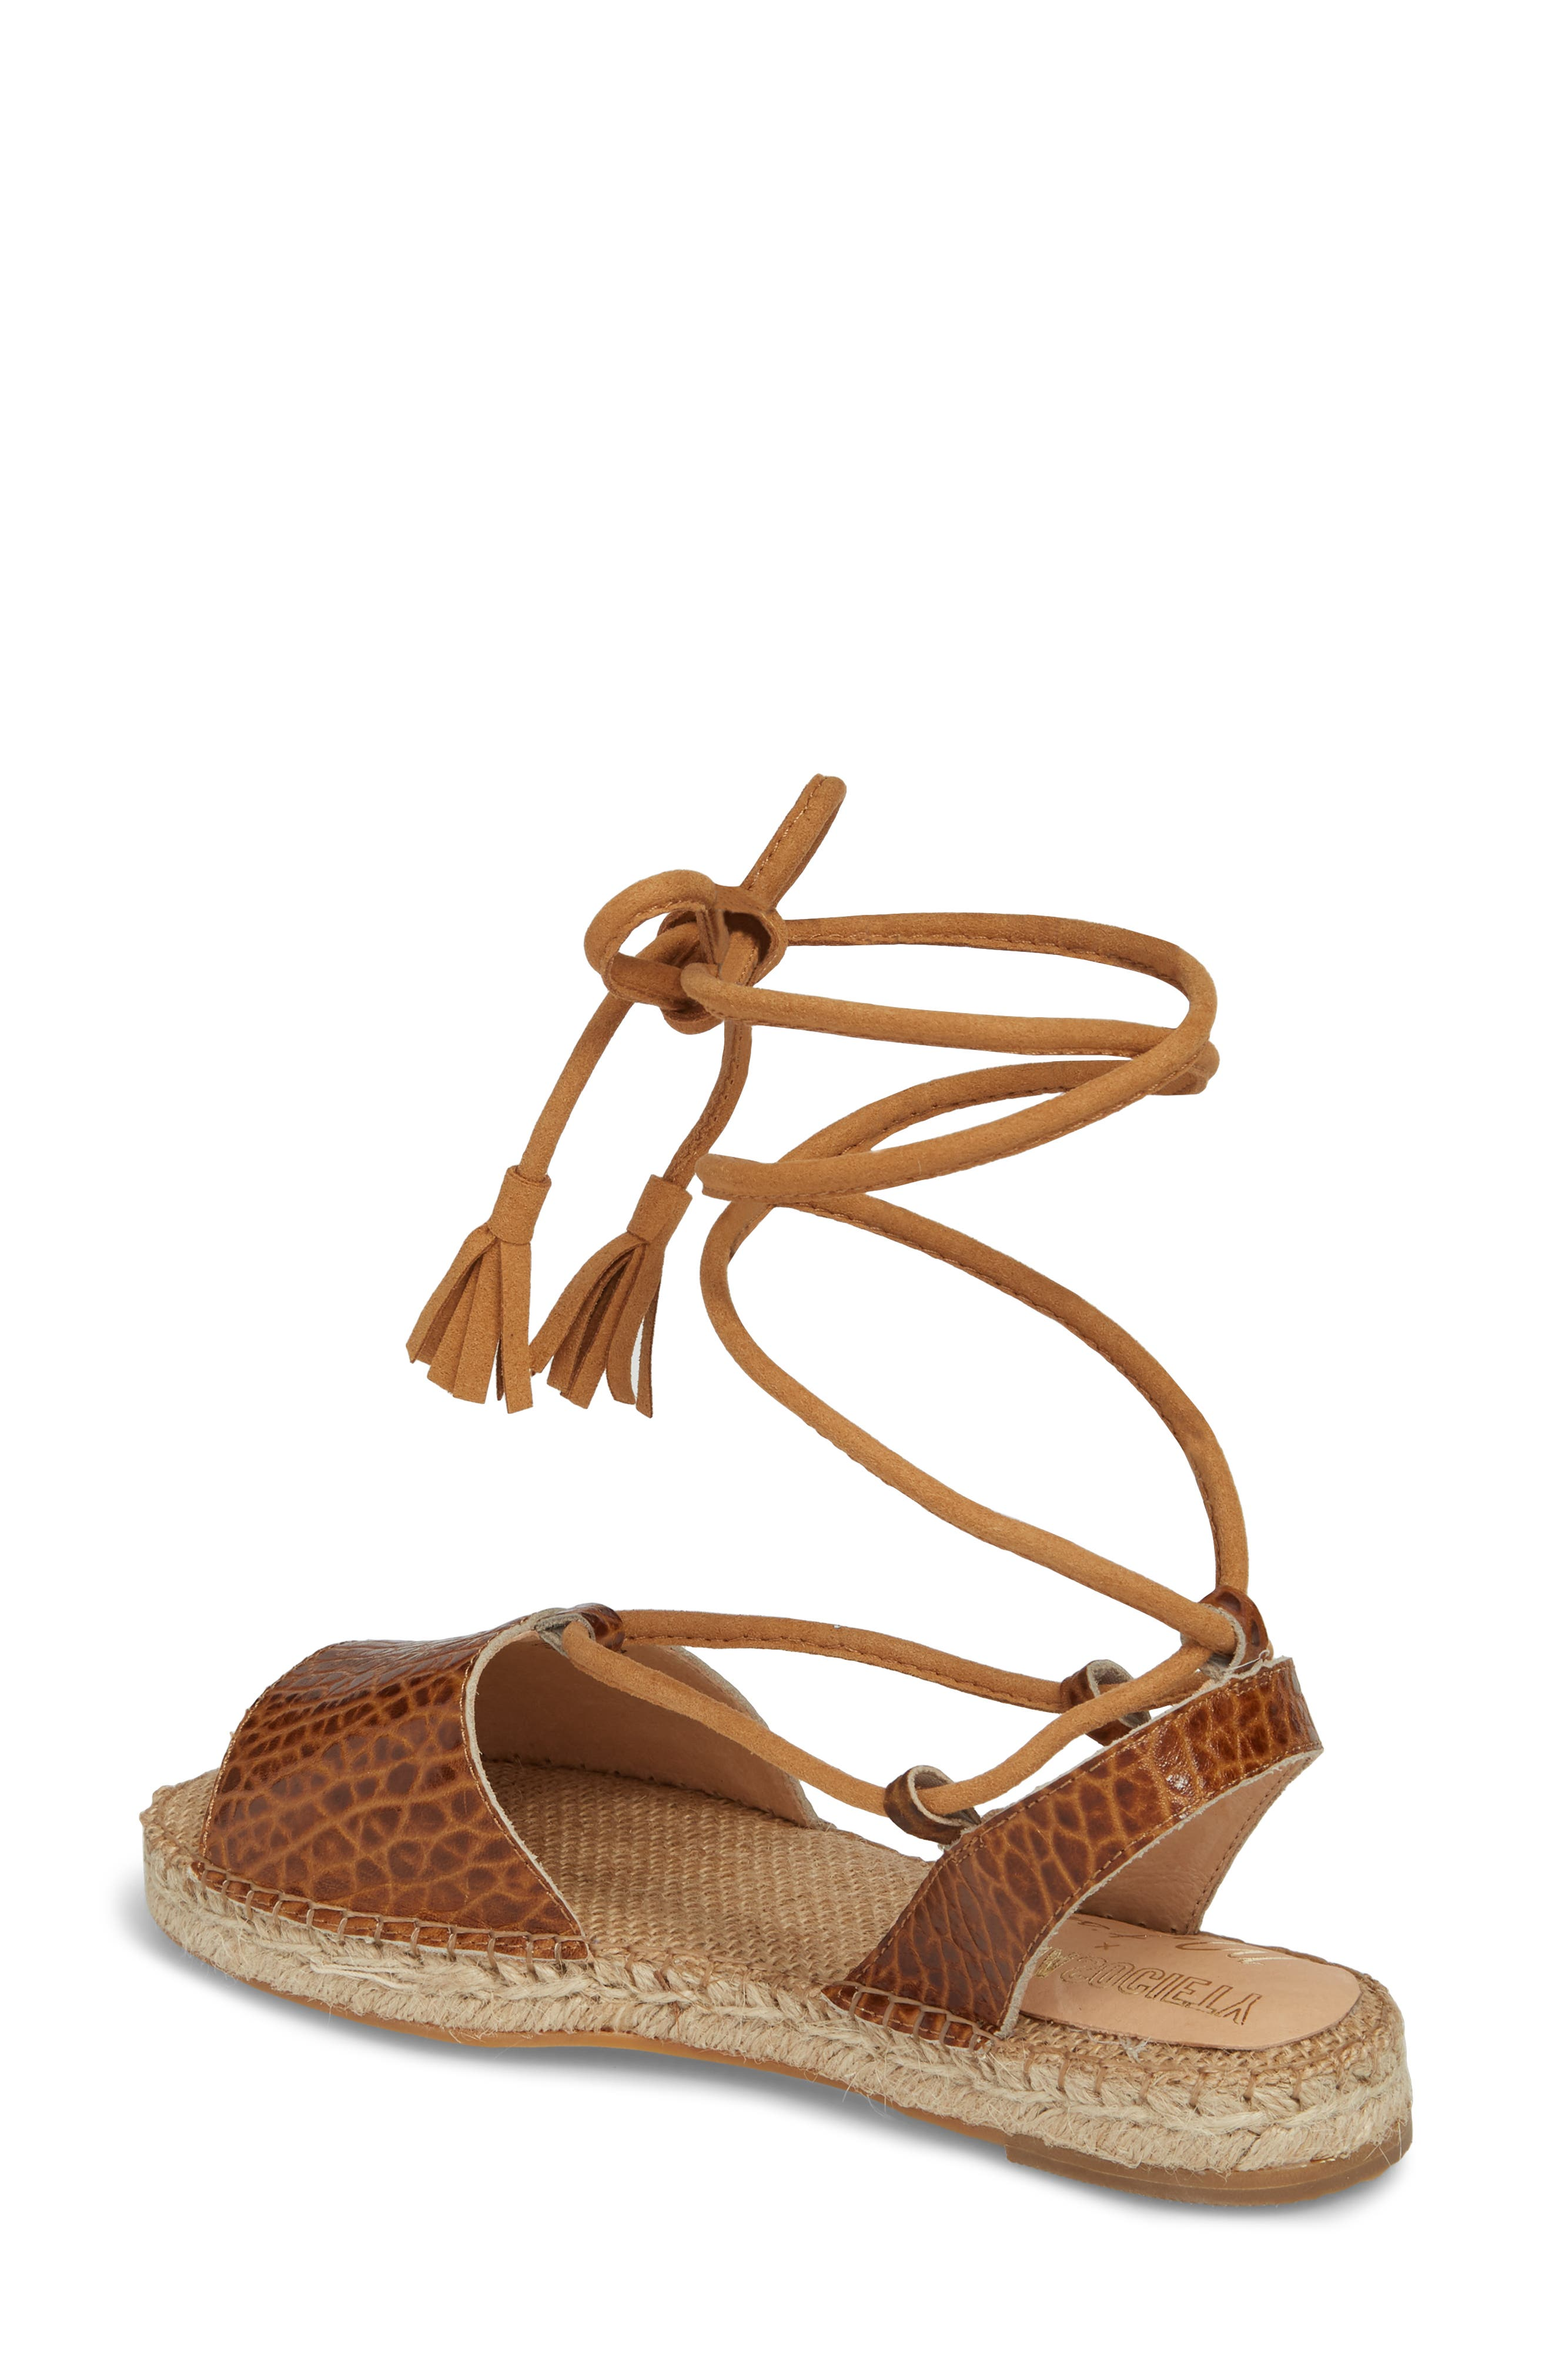 Amuse Society x Matisse La Vita Sandal,                             Alternate thumbnail 2, color,                             Tan Leather